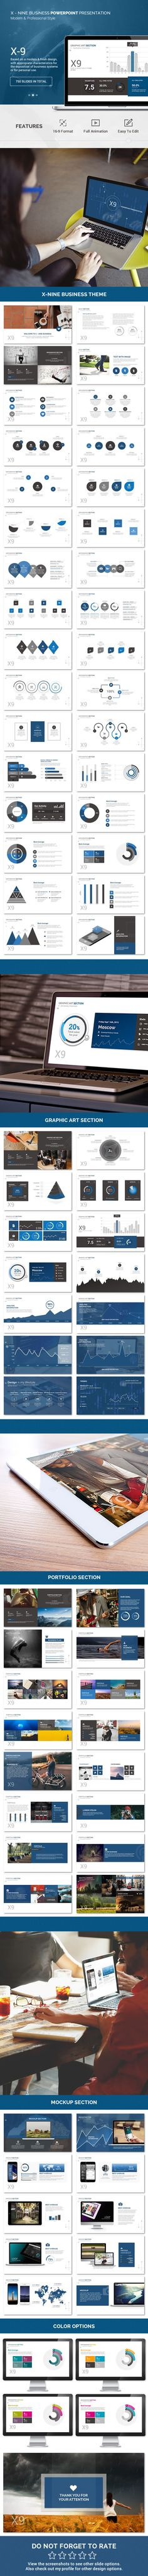 X nine Business PowerPoint Template #slides #design Download: http://graphicriver.net/item/x-nine-business-/13303752?ref=ksioks